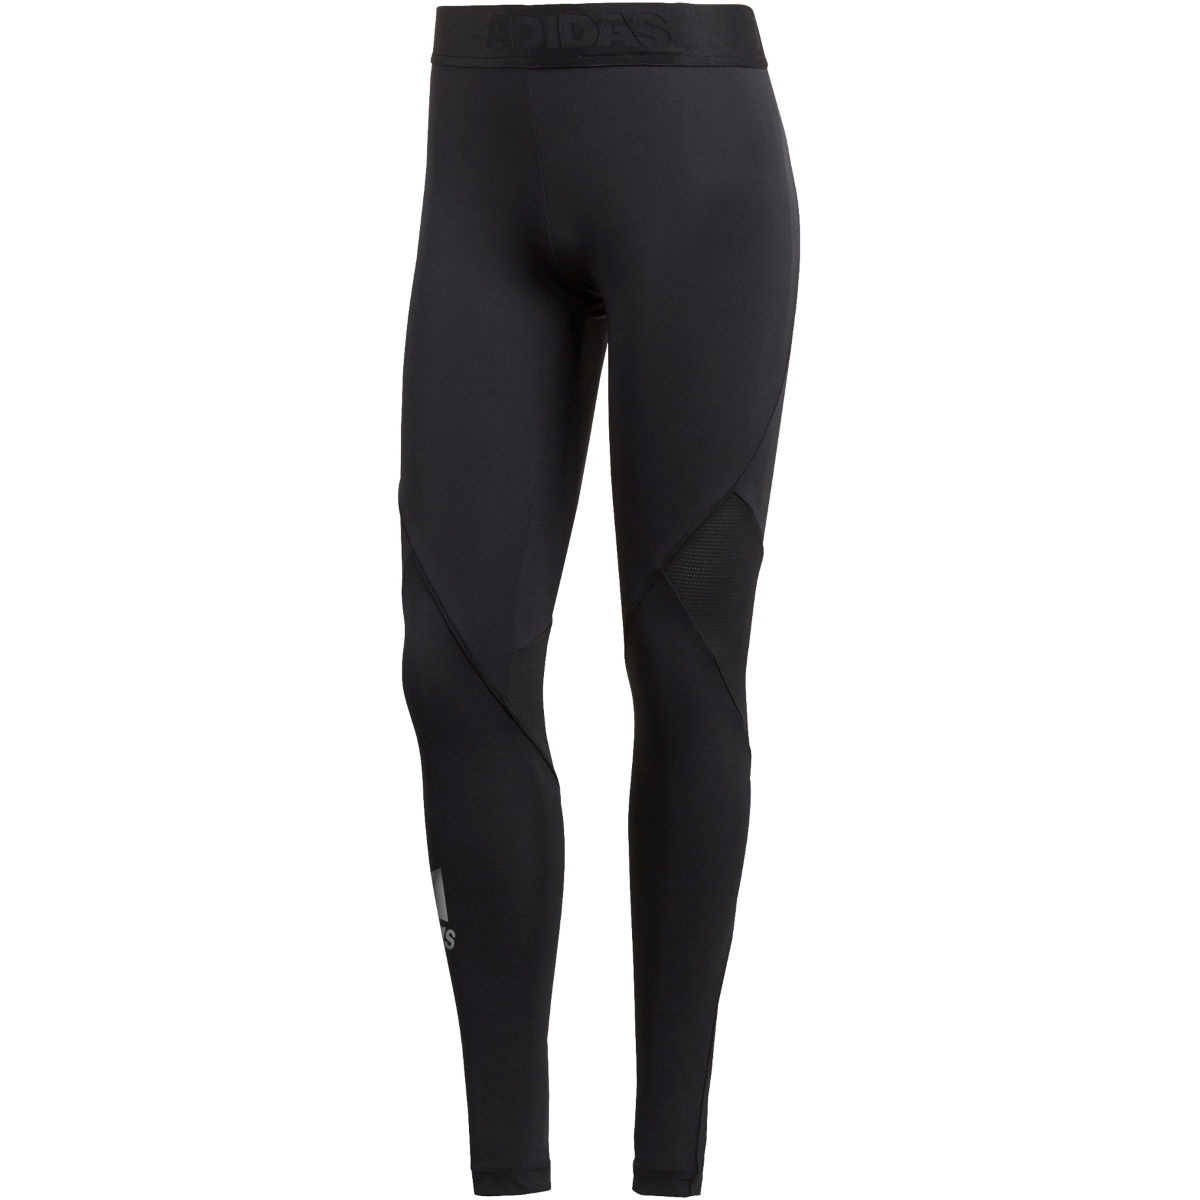 adidas Women's ALPHASKIN SPORT Long Tight   Compression Tights